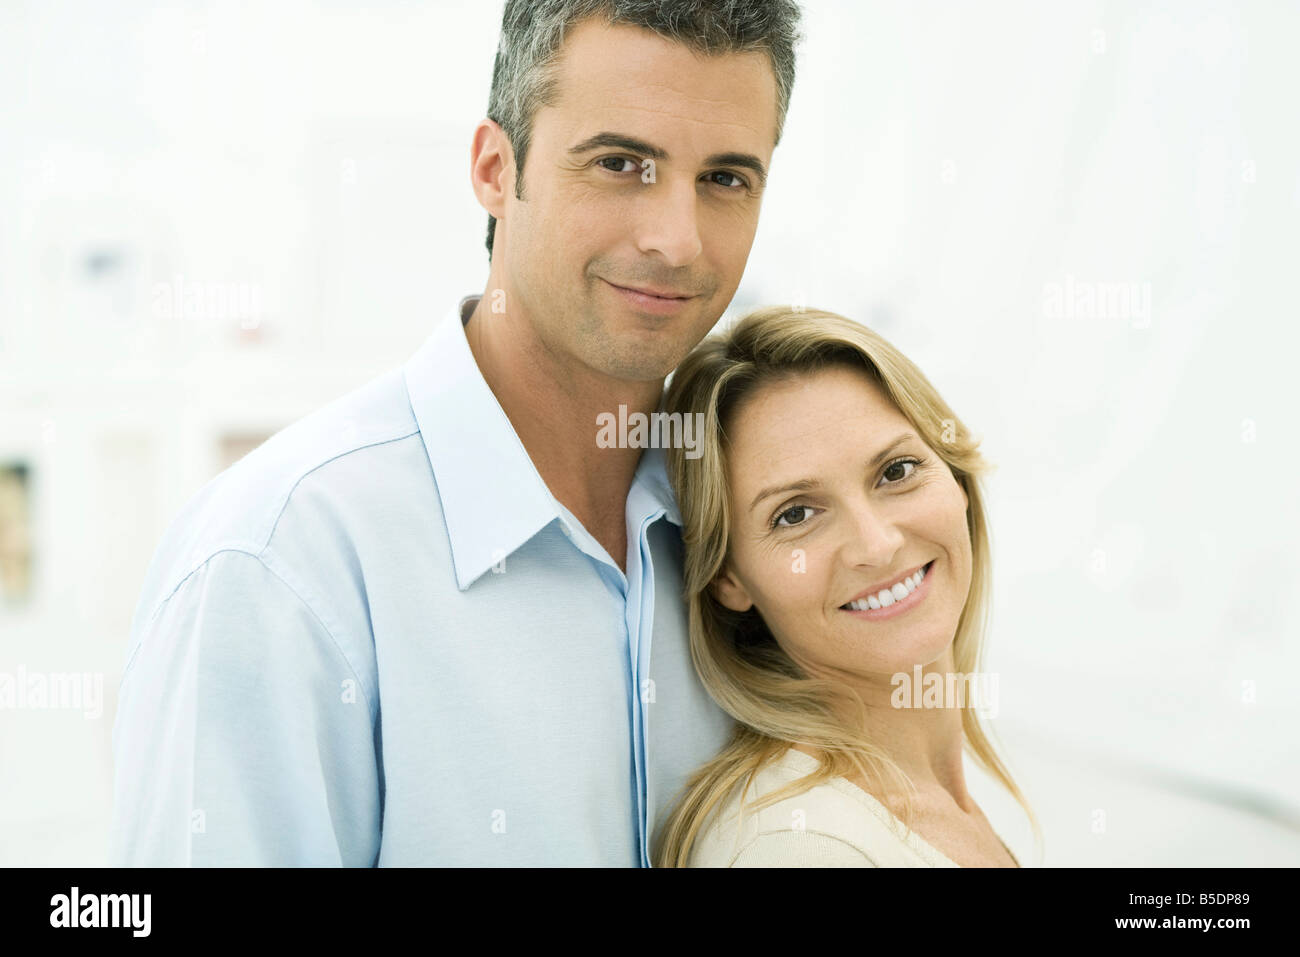 Couple smiling at camera, woman leaning against man, portrait - Stock Image